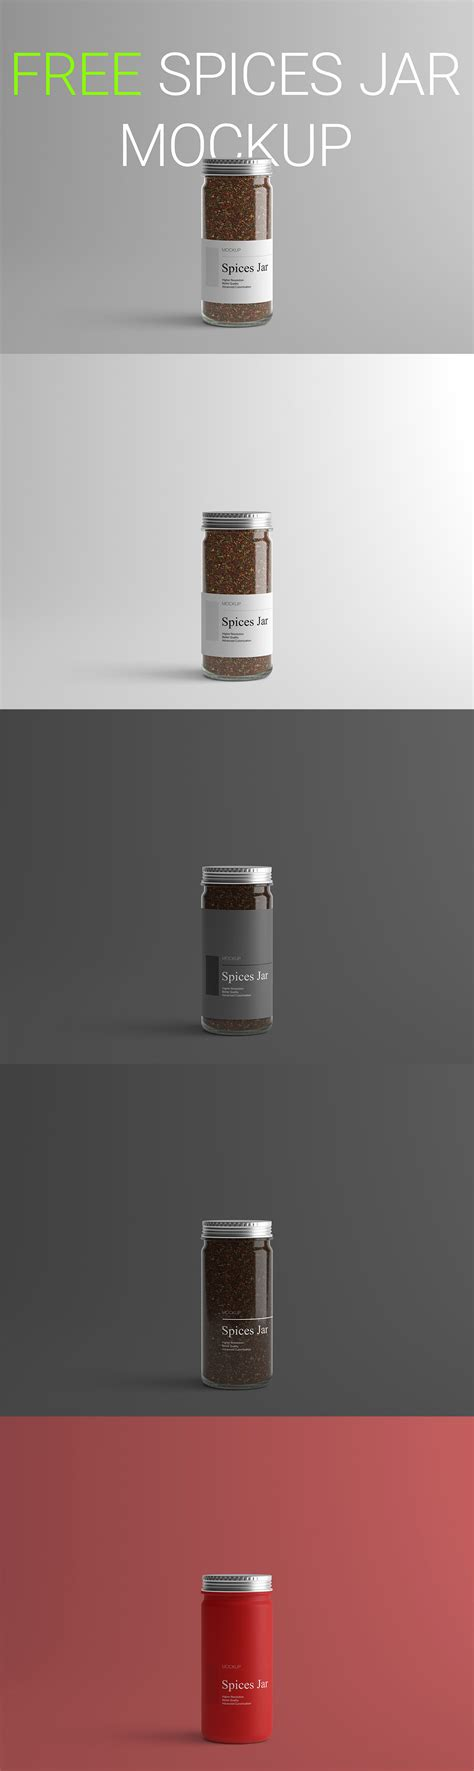 Apple imac mockup, macbook mockup, iphone mockup, ipad, billboards & signs, branding, print, fashion, apparel & more poster free mockup in the master bedroom to showcase your artwork in a photorealistic interior. Free Spices Jar Mockup ~ Creativetacos